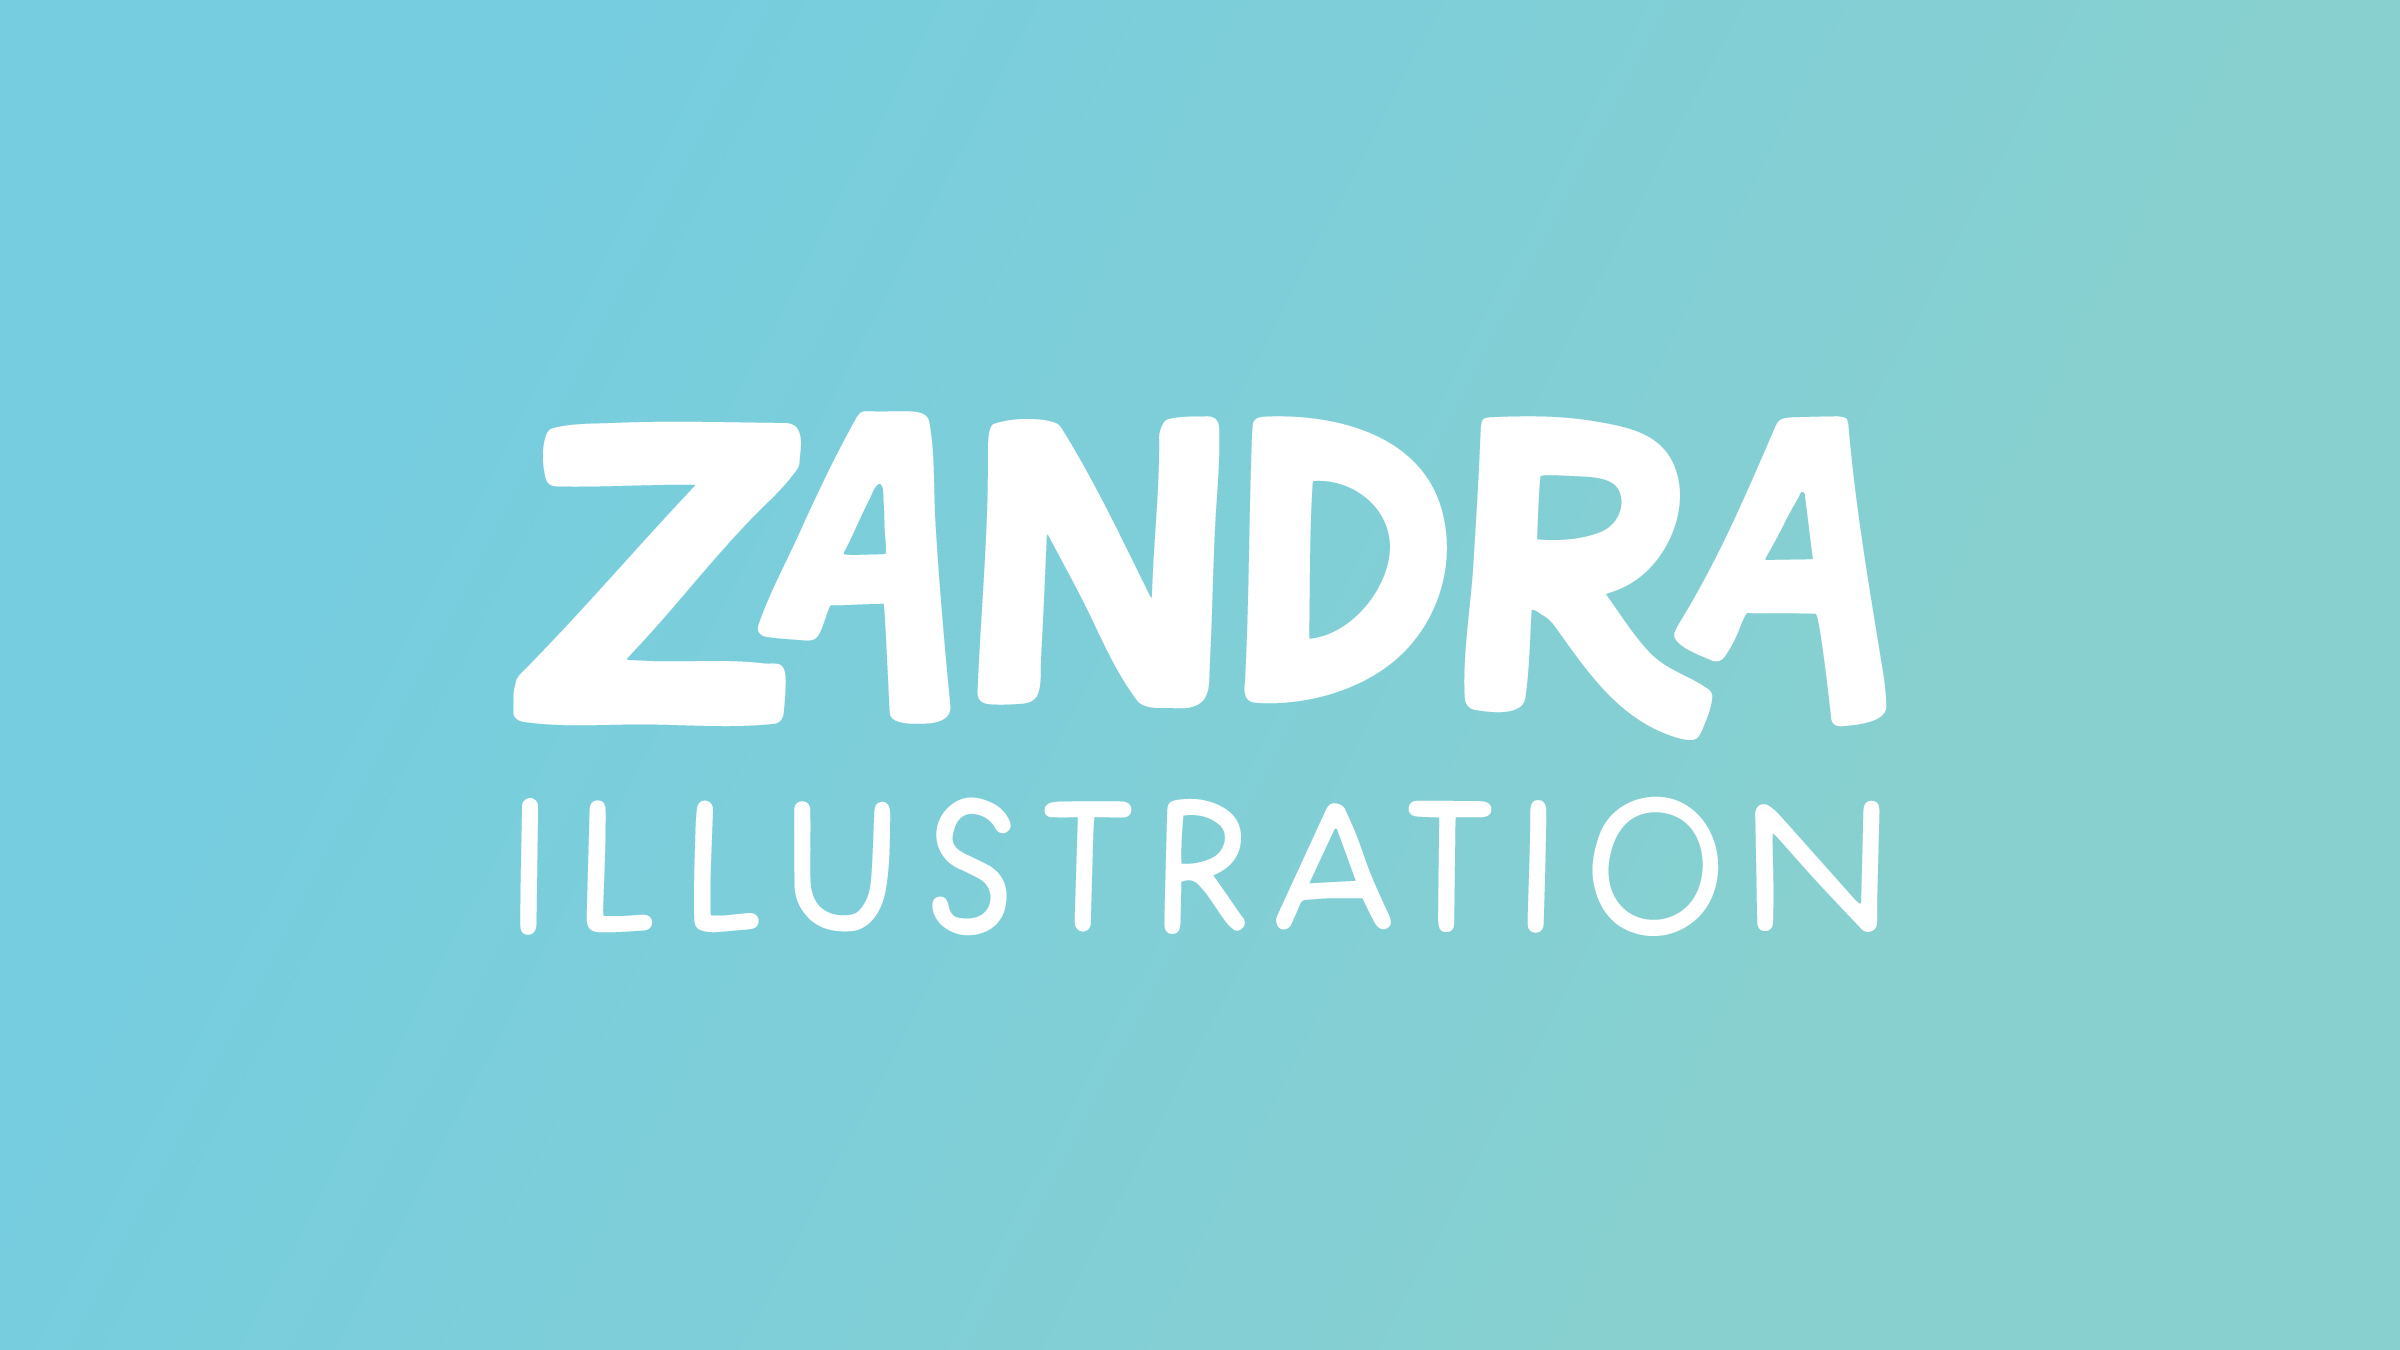 Zandra Illustration - The Result